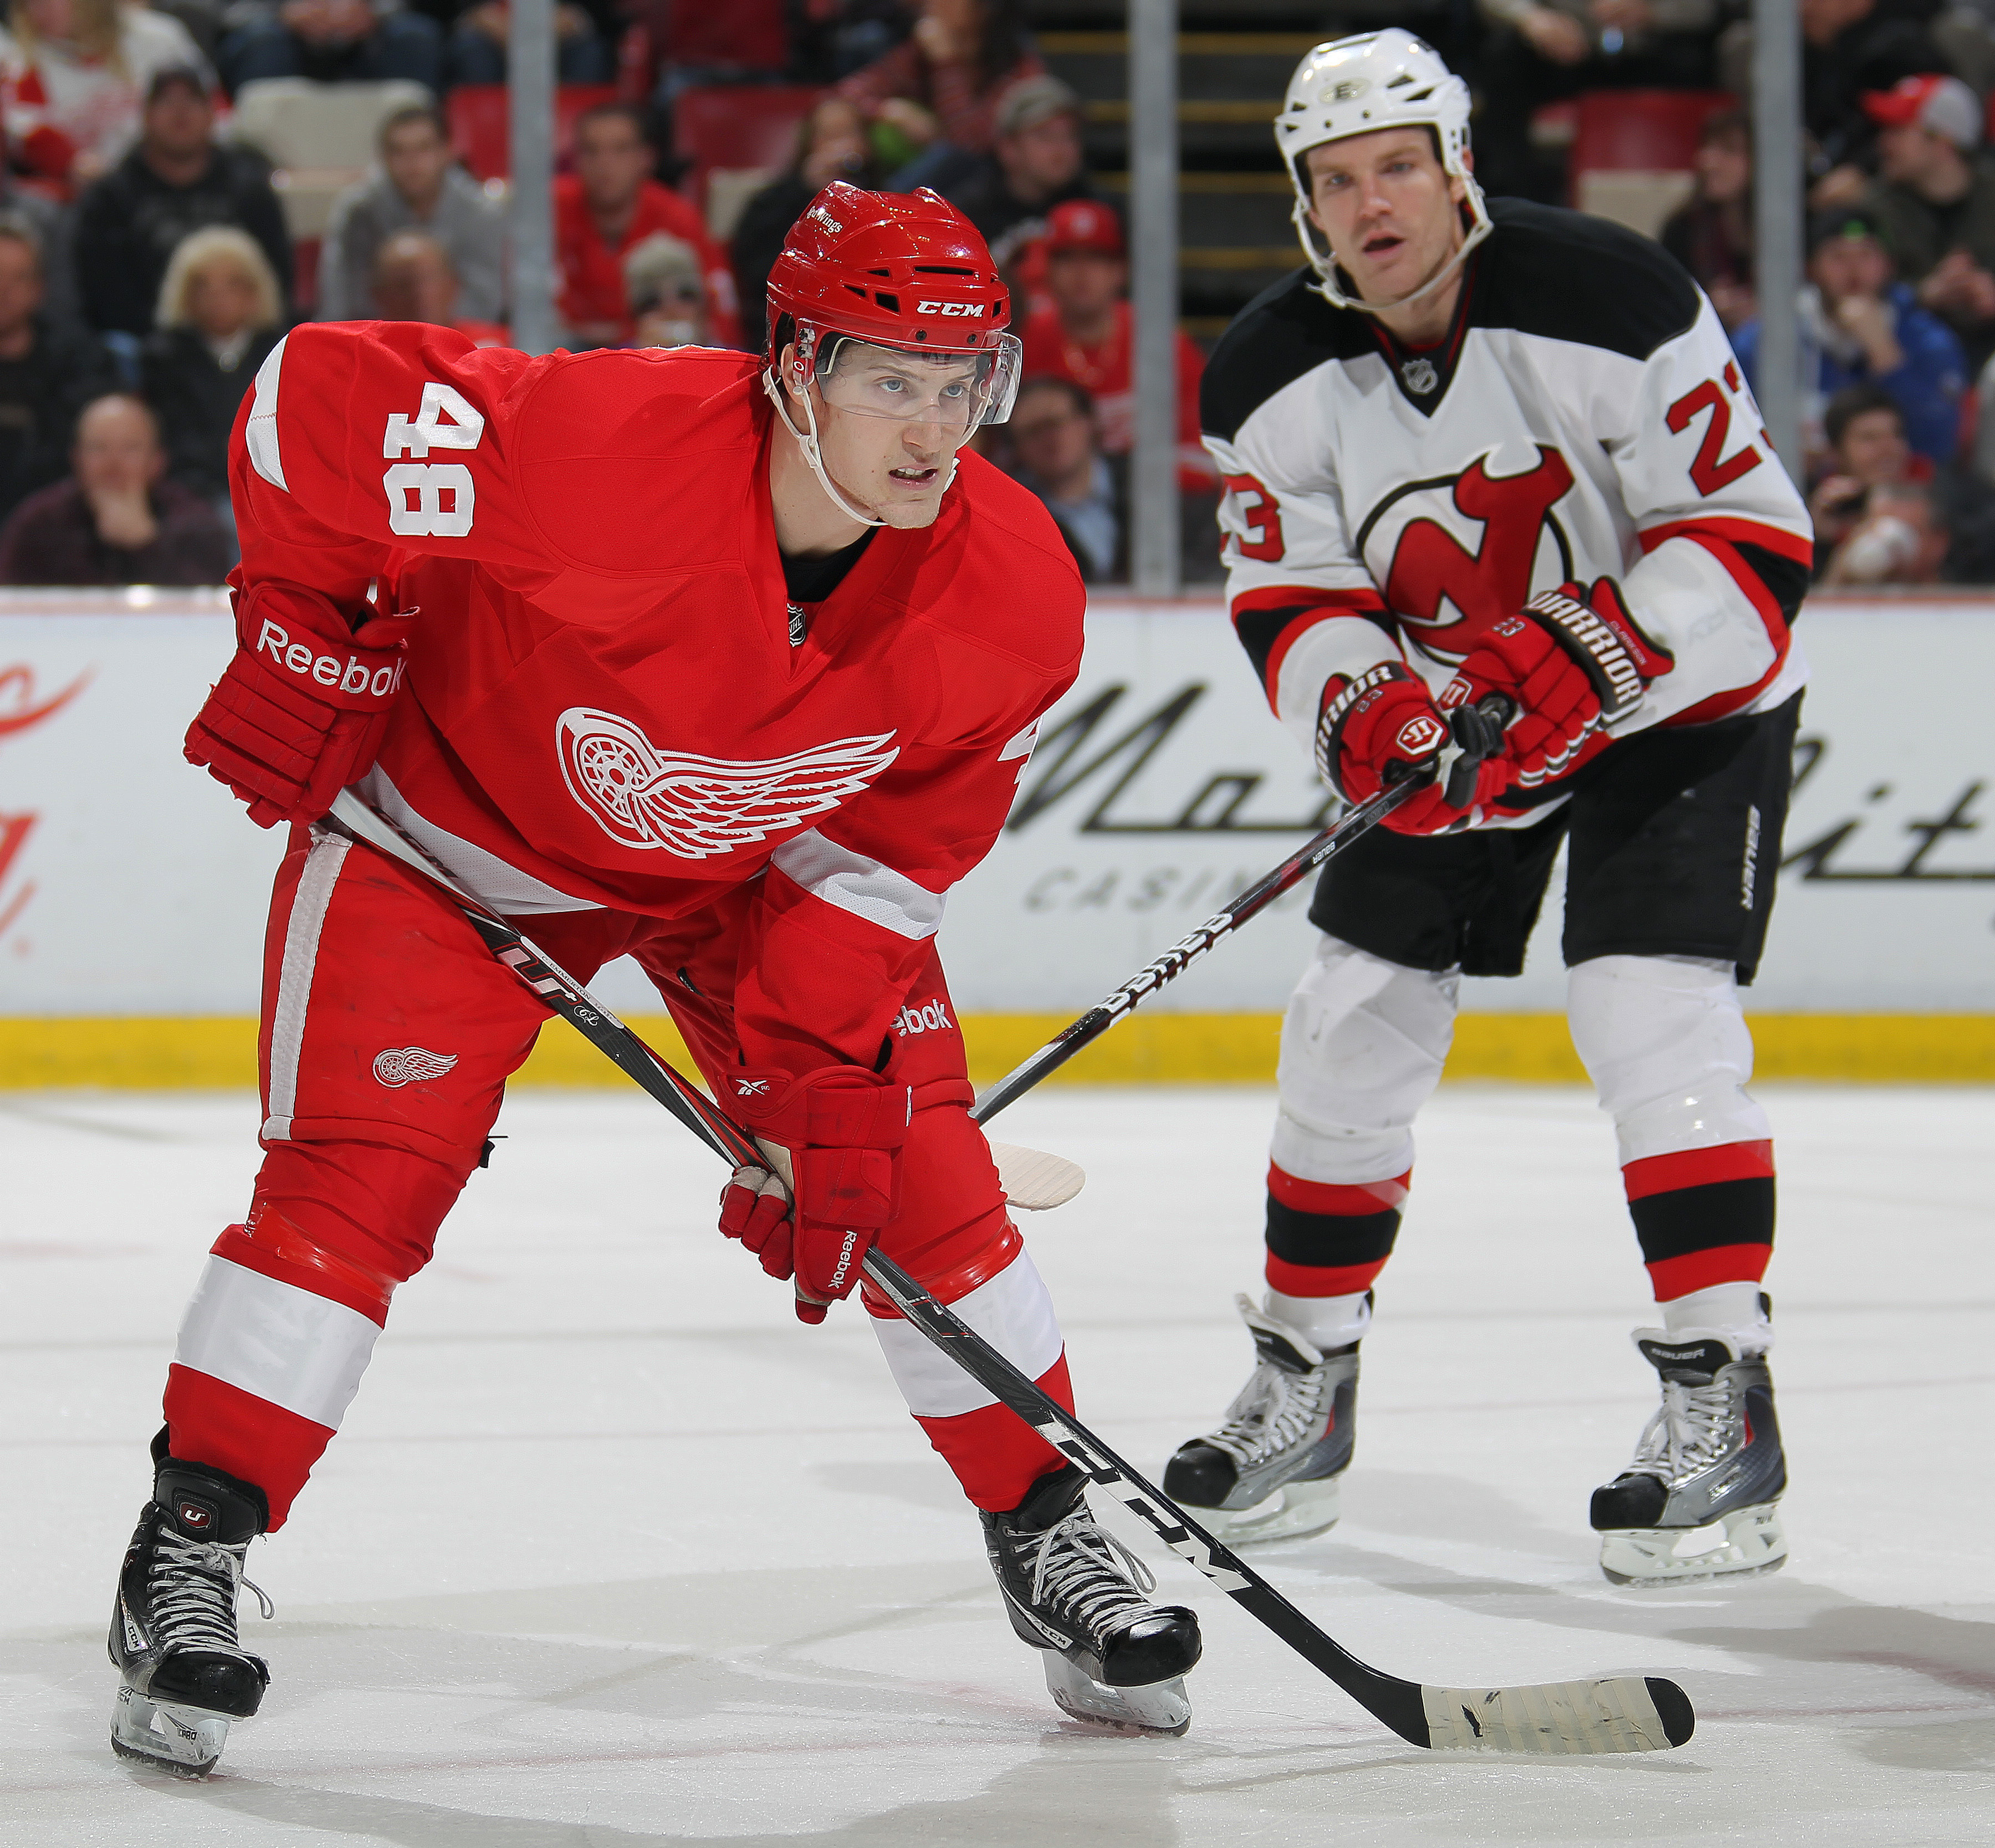 DETROIT, MI - JANUARY 26:  David Clarkson #23 of the New Jersey Devils reacts to the way rookie Cory Emmerton #48 of the Detroit Red Wings is lining up for a faceoff in a game on January 26, 2011 at the Joe Louis Arena in Detroit, Michigan. The Wings defe